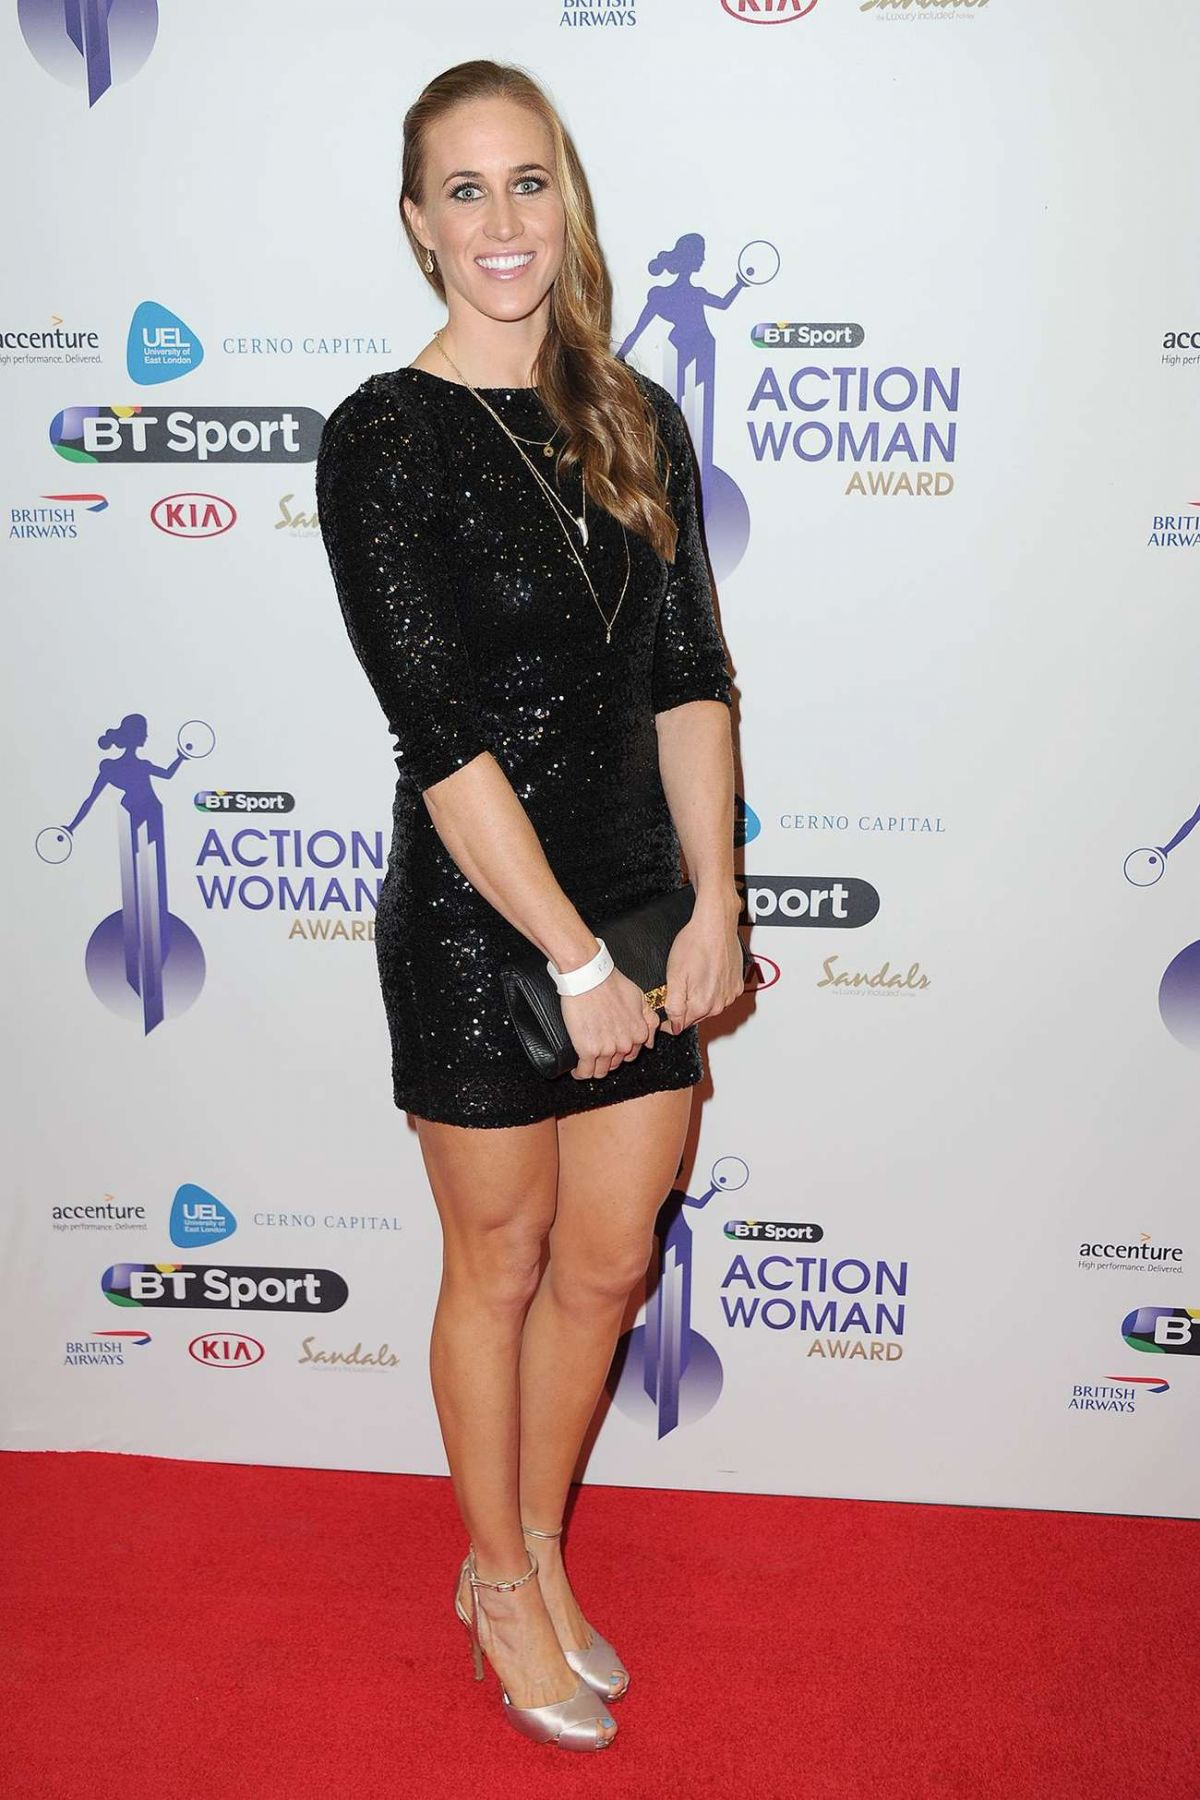 HELEN GLOVER at BT Sport Action Woman Awards